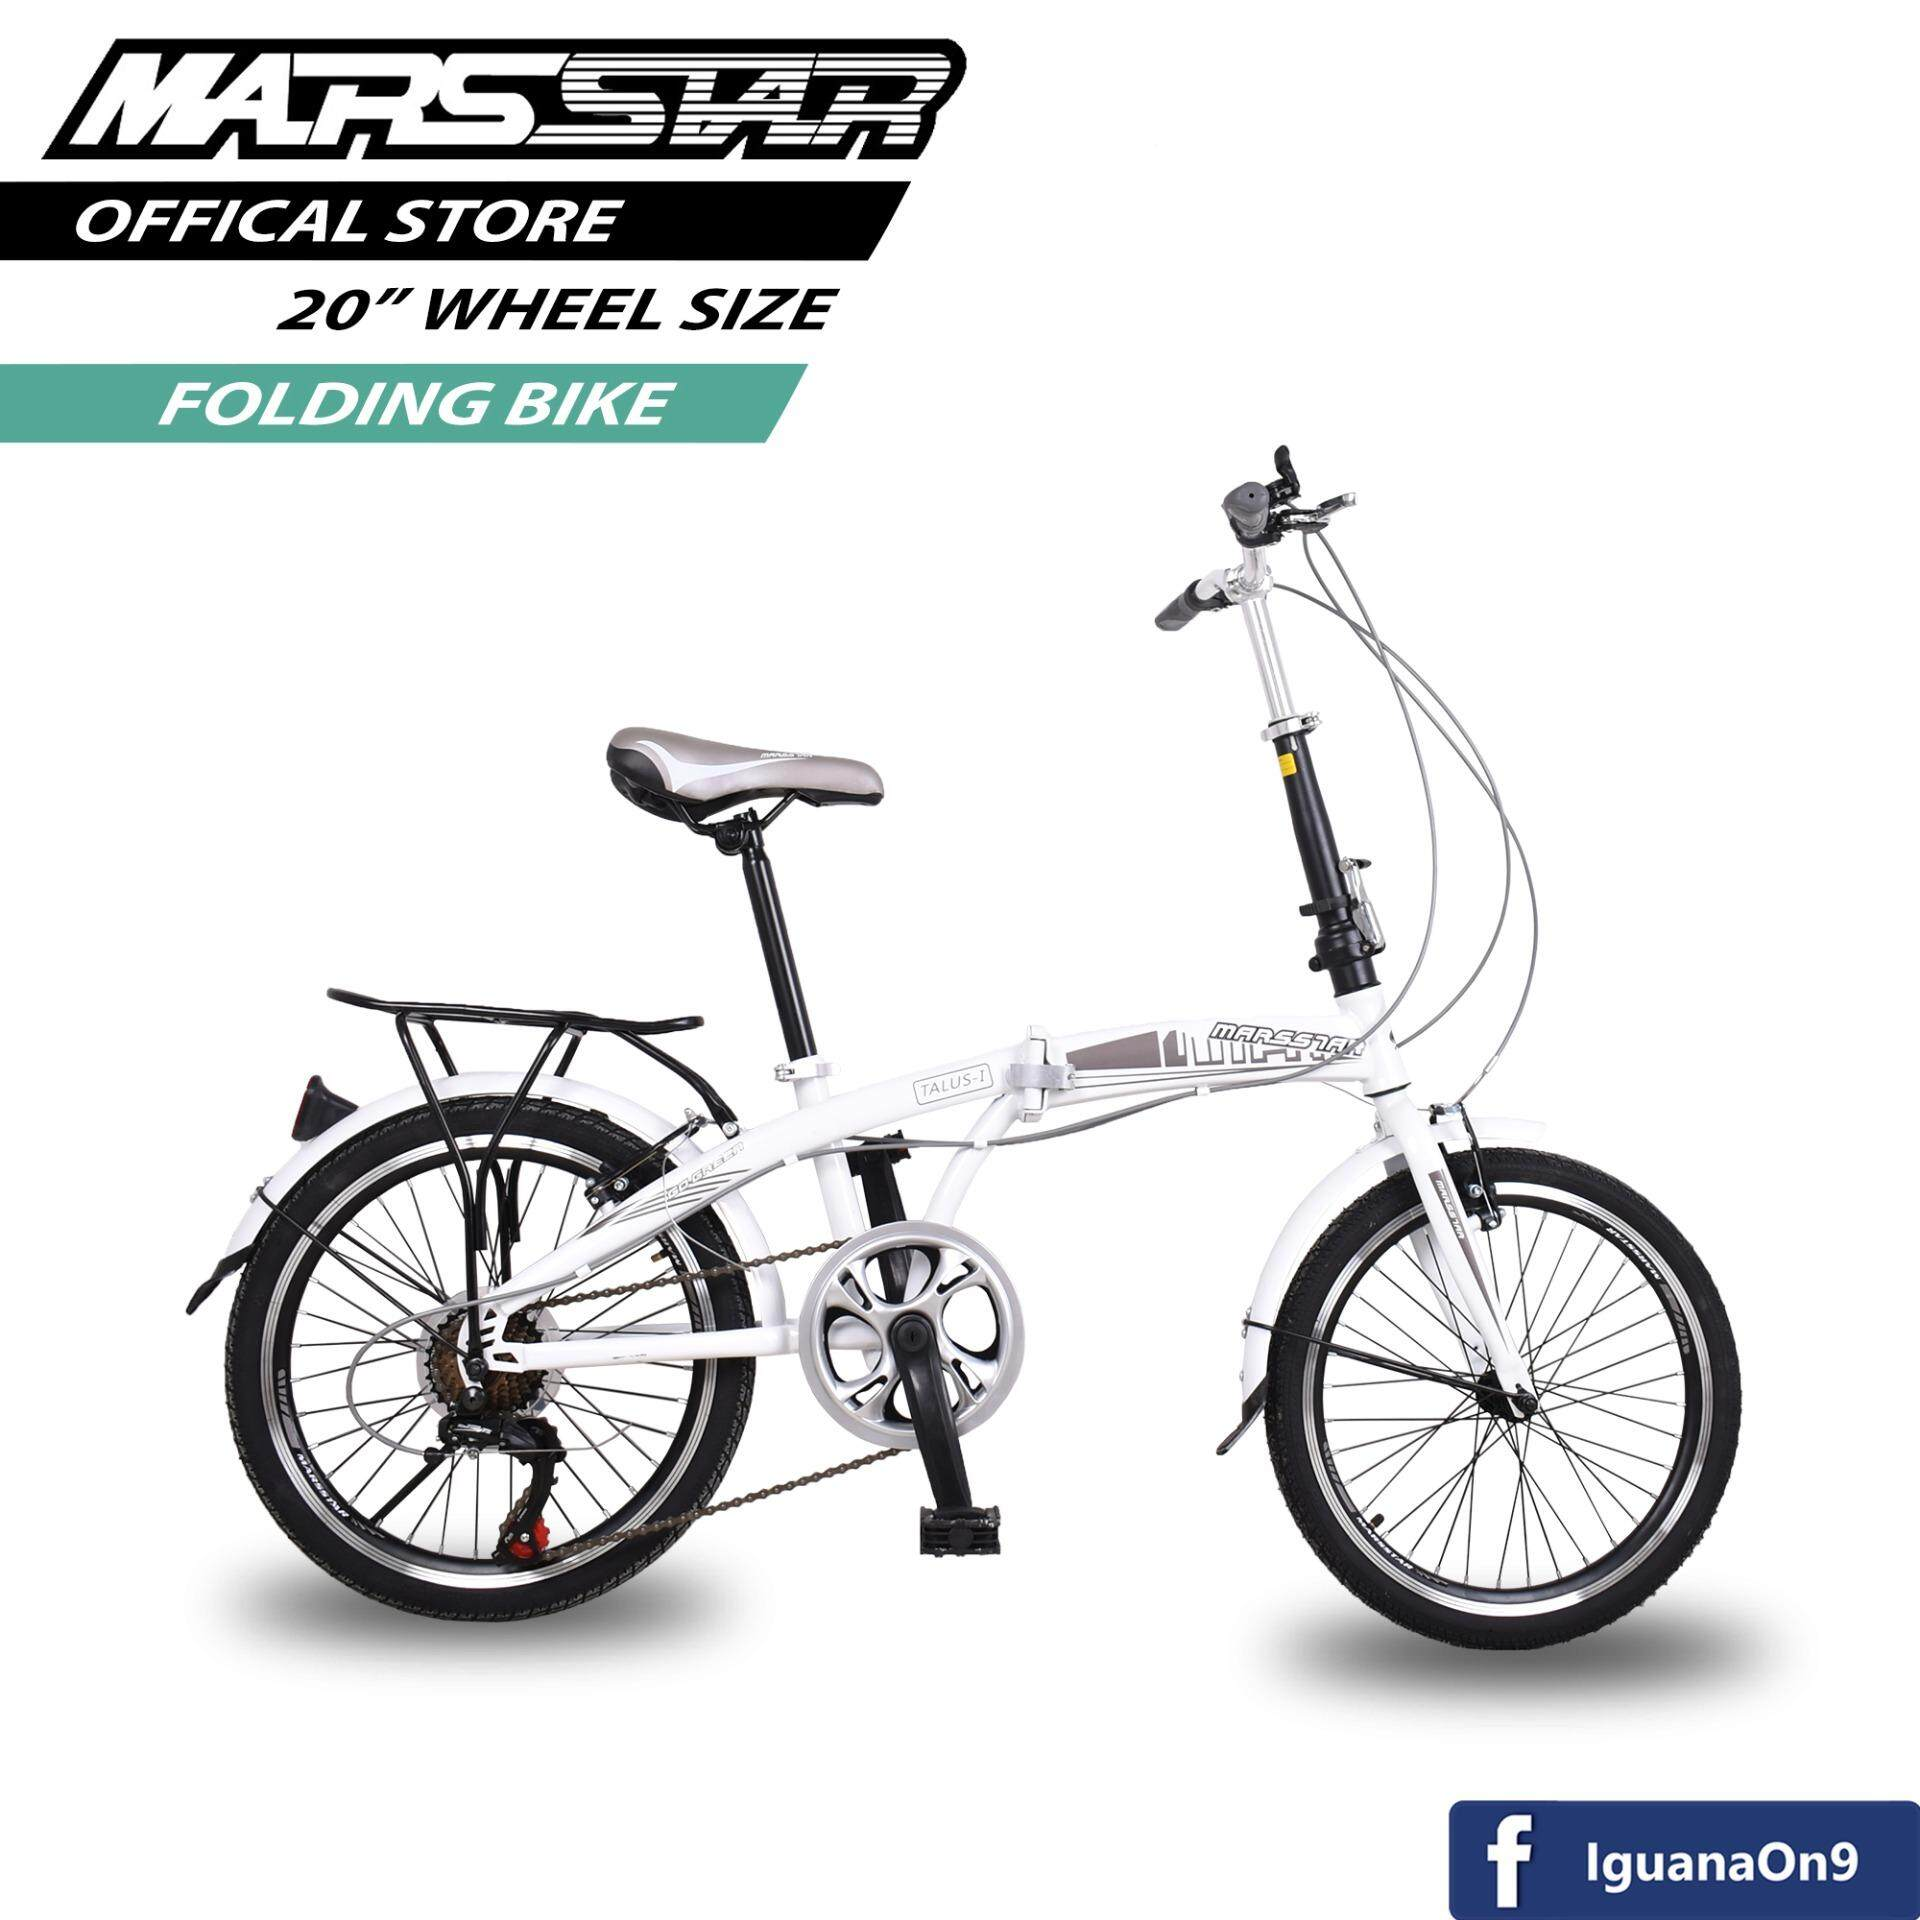 """MARSSTAR 20"""" 2006 Talus-I Foldable Bicycle (New White Silver) with SHIMANO Equipped"""